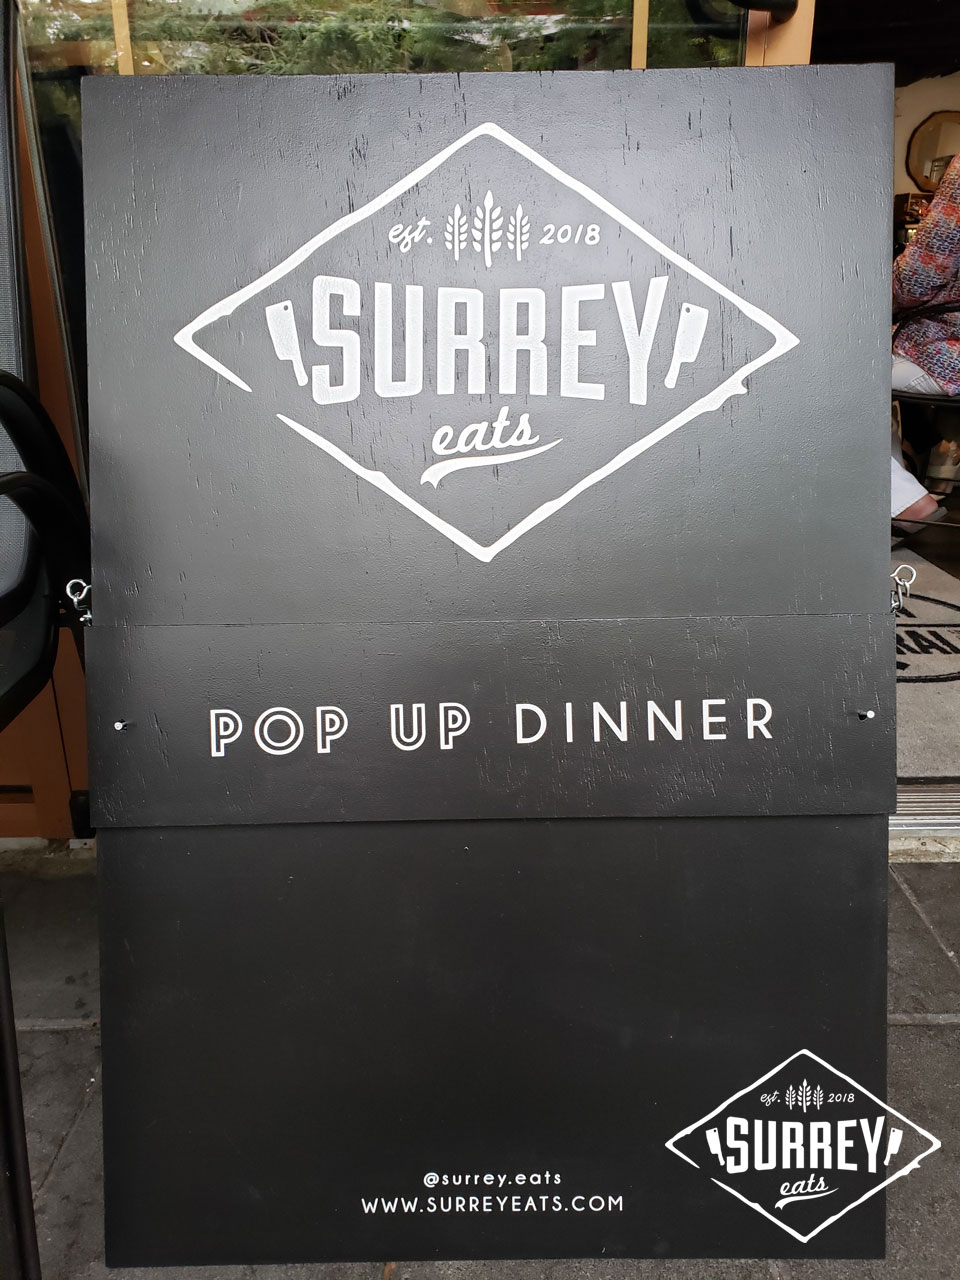 A sandwich board sign reads Surrey Eats Pop Up Dinner